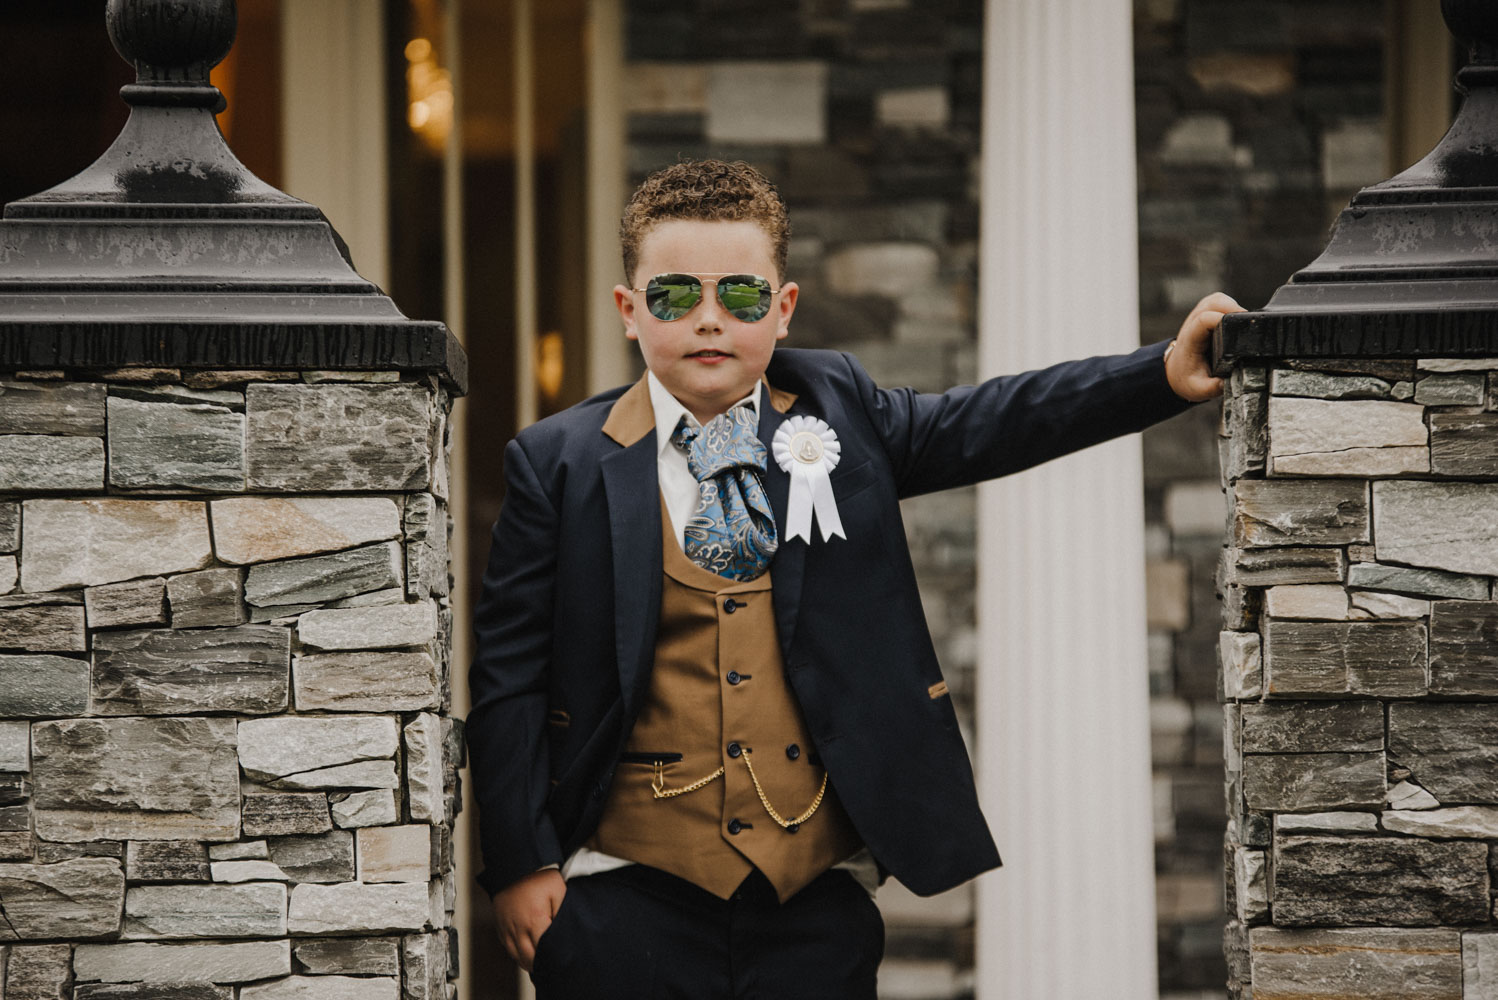 Mike and his Communion Day